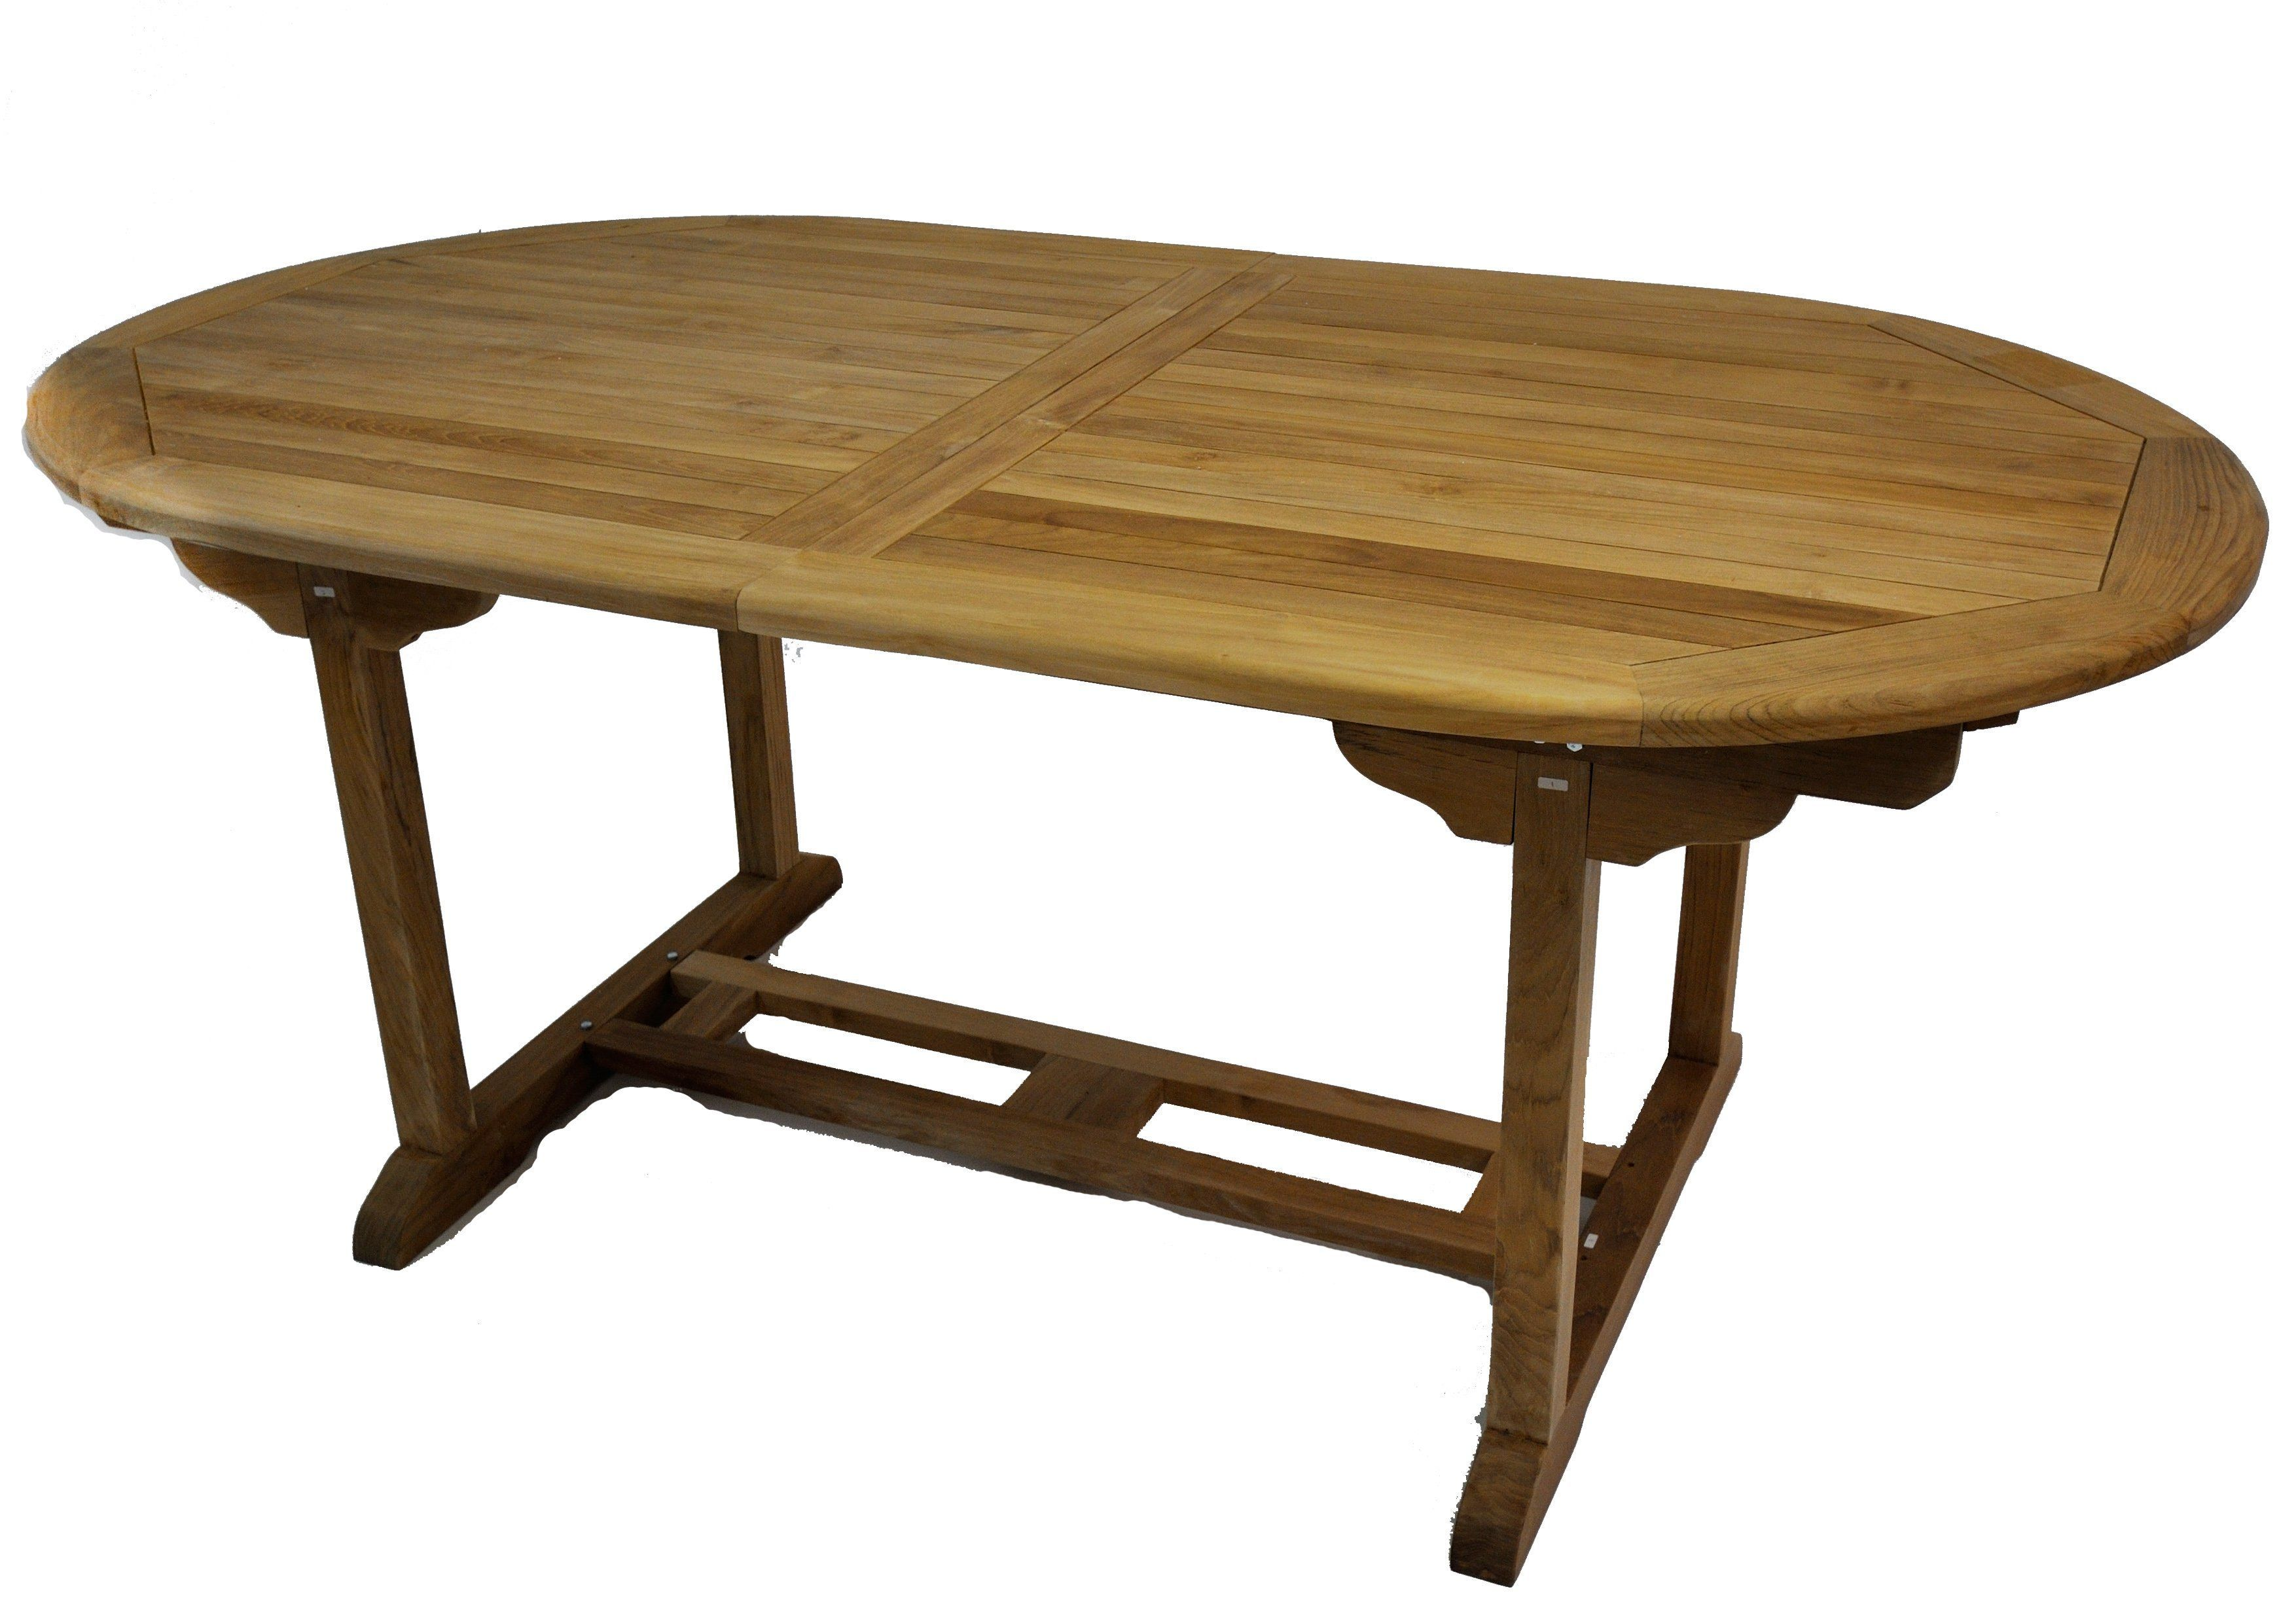 Oval Teak Wood Outdoor Dining Table With Folding Chairs Products - Oval teak outdoor dining table